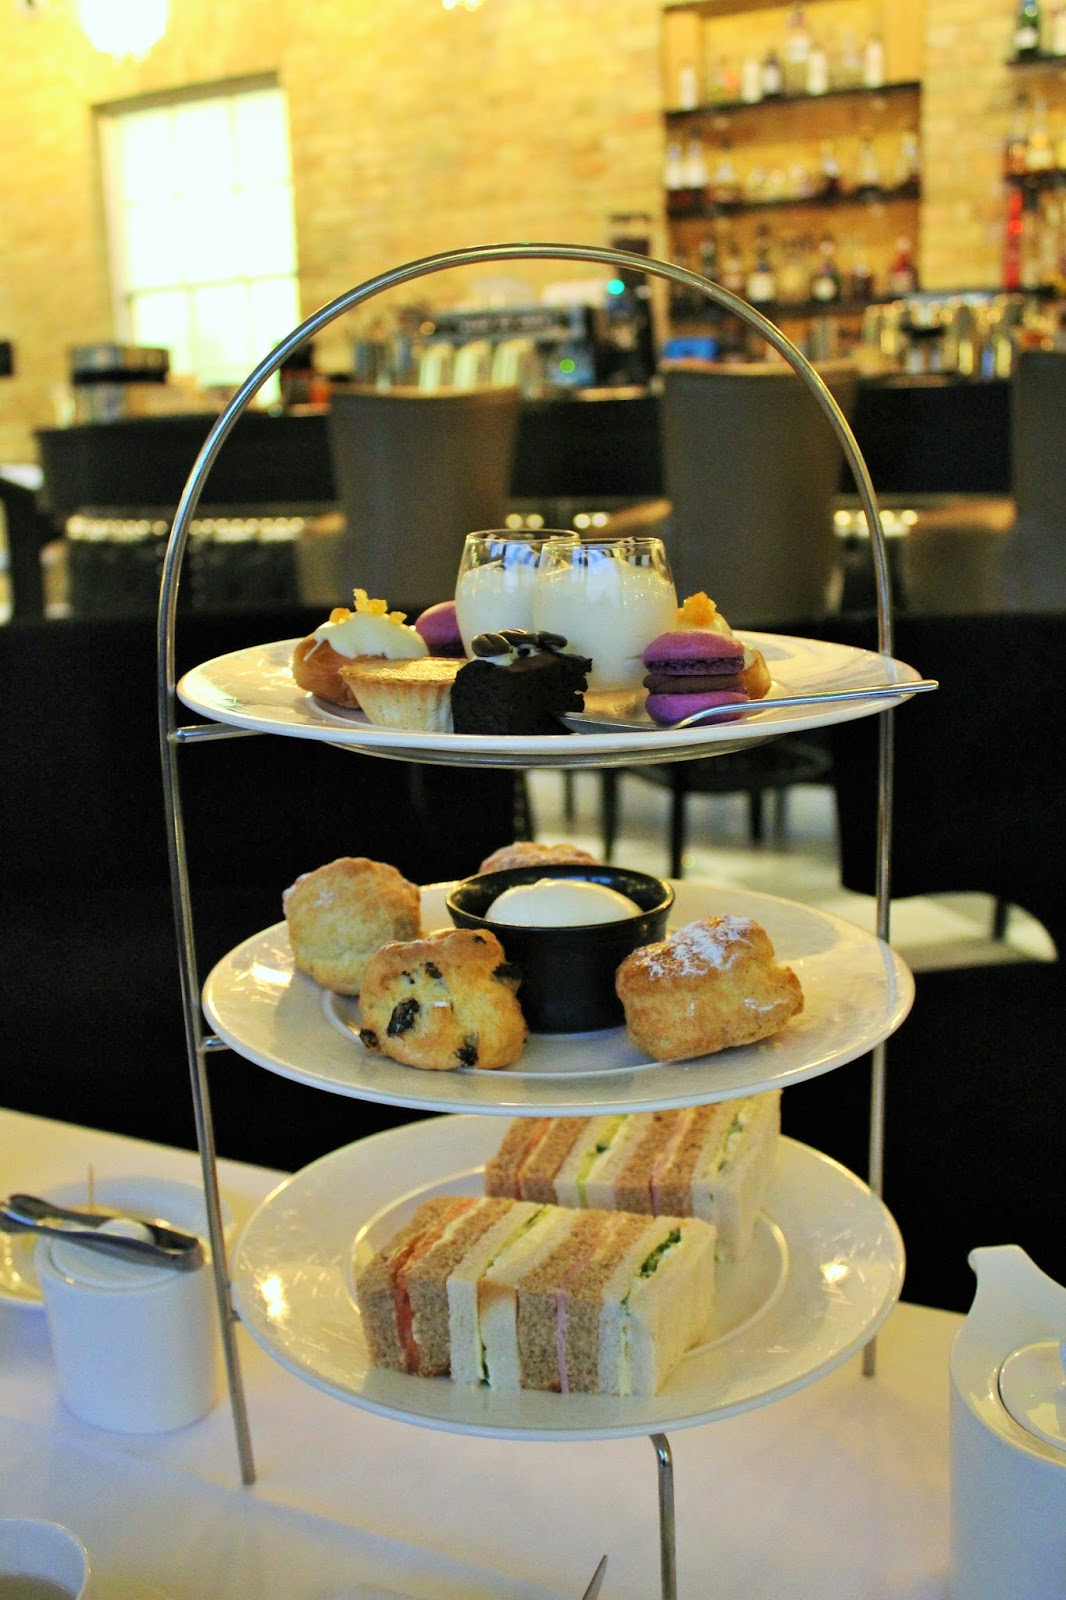 Poets House Hotel, Ely, Cambridgeshire - Afternoon Tea